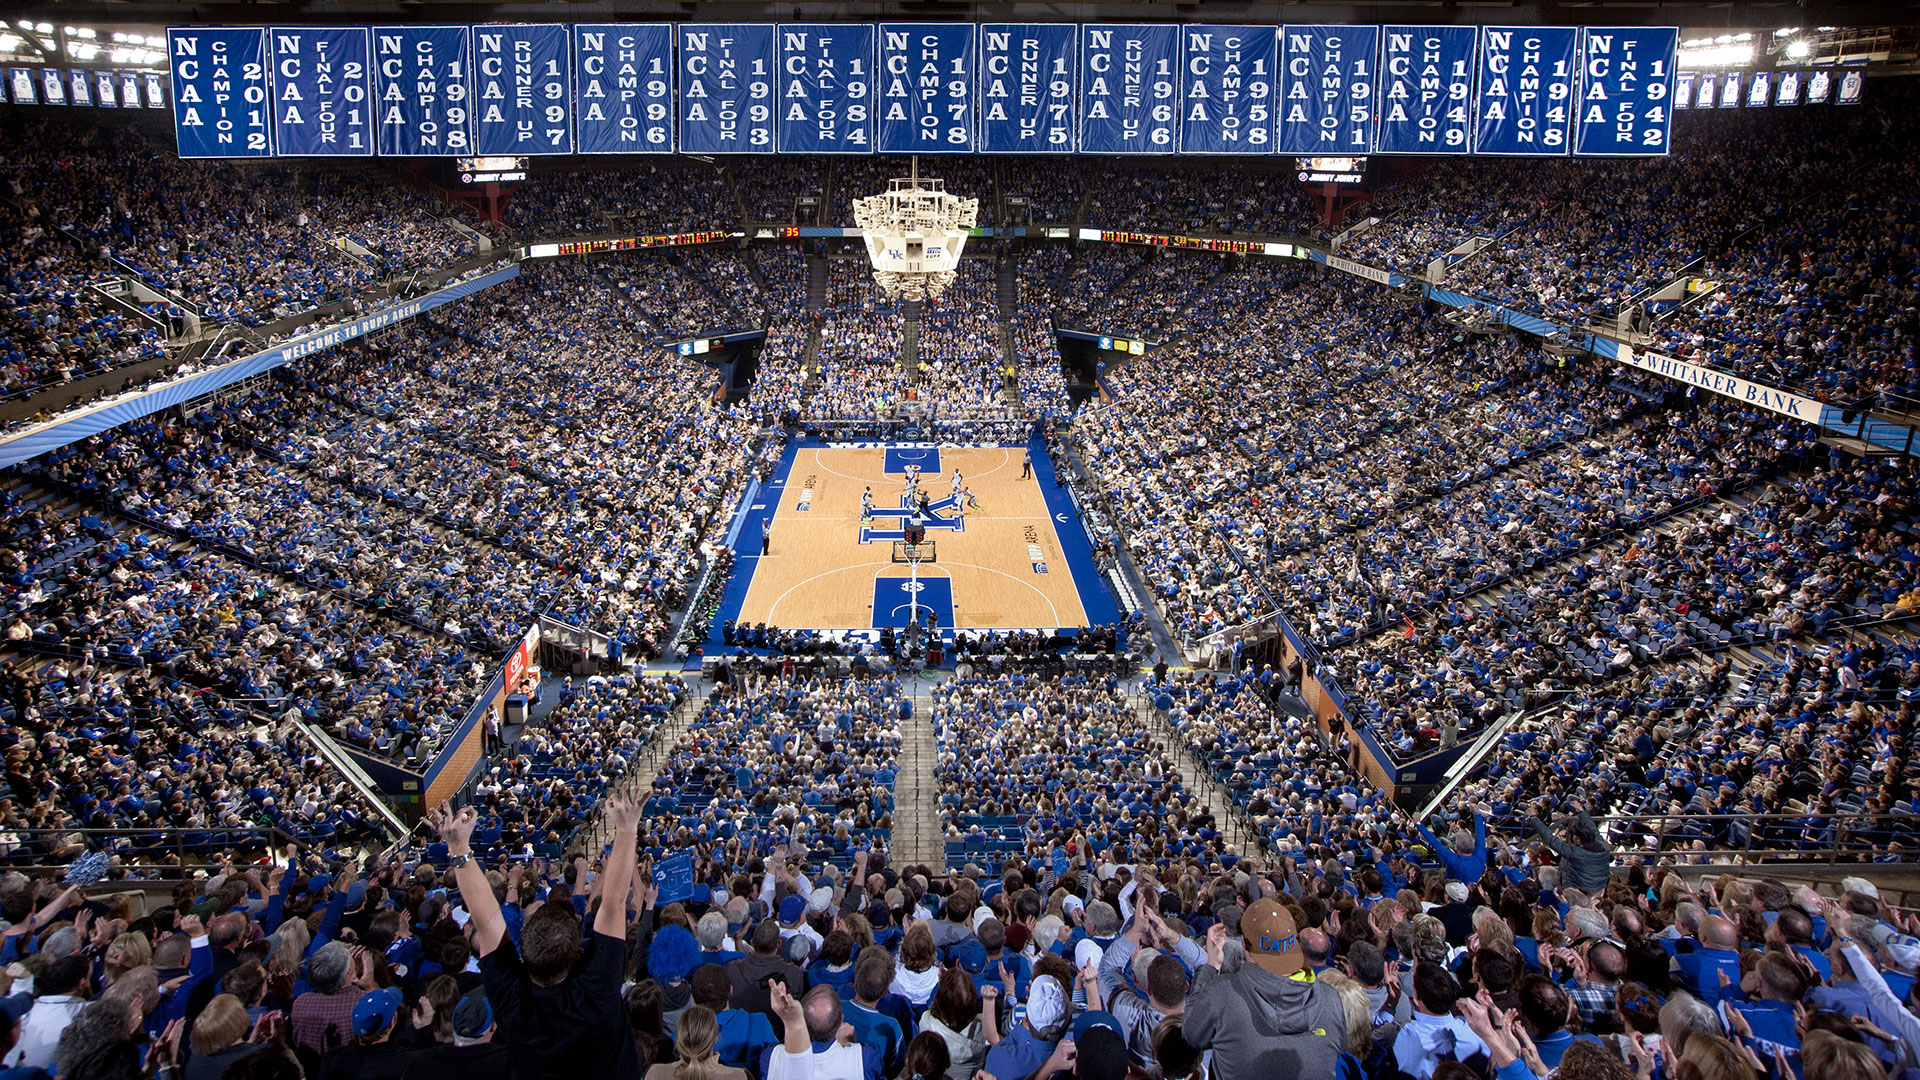 Kentucky Basketball Wildcats Have Found Their Groove: The 9 Most Iconic Basketball Courts In America